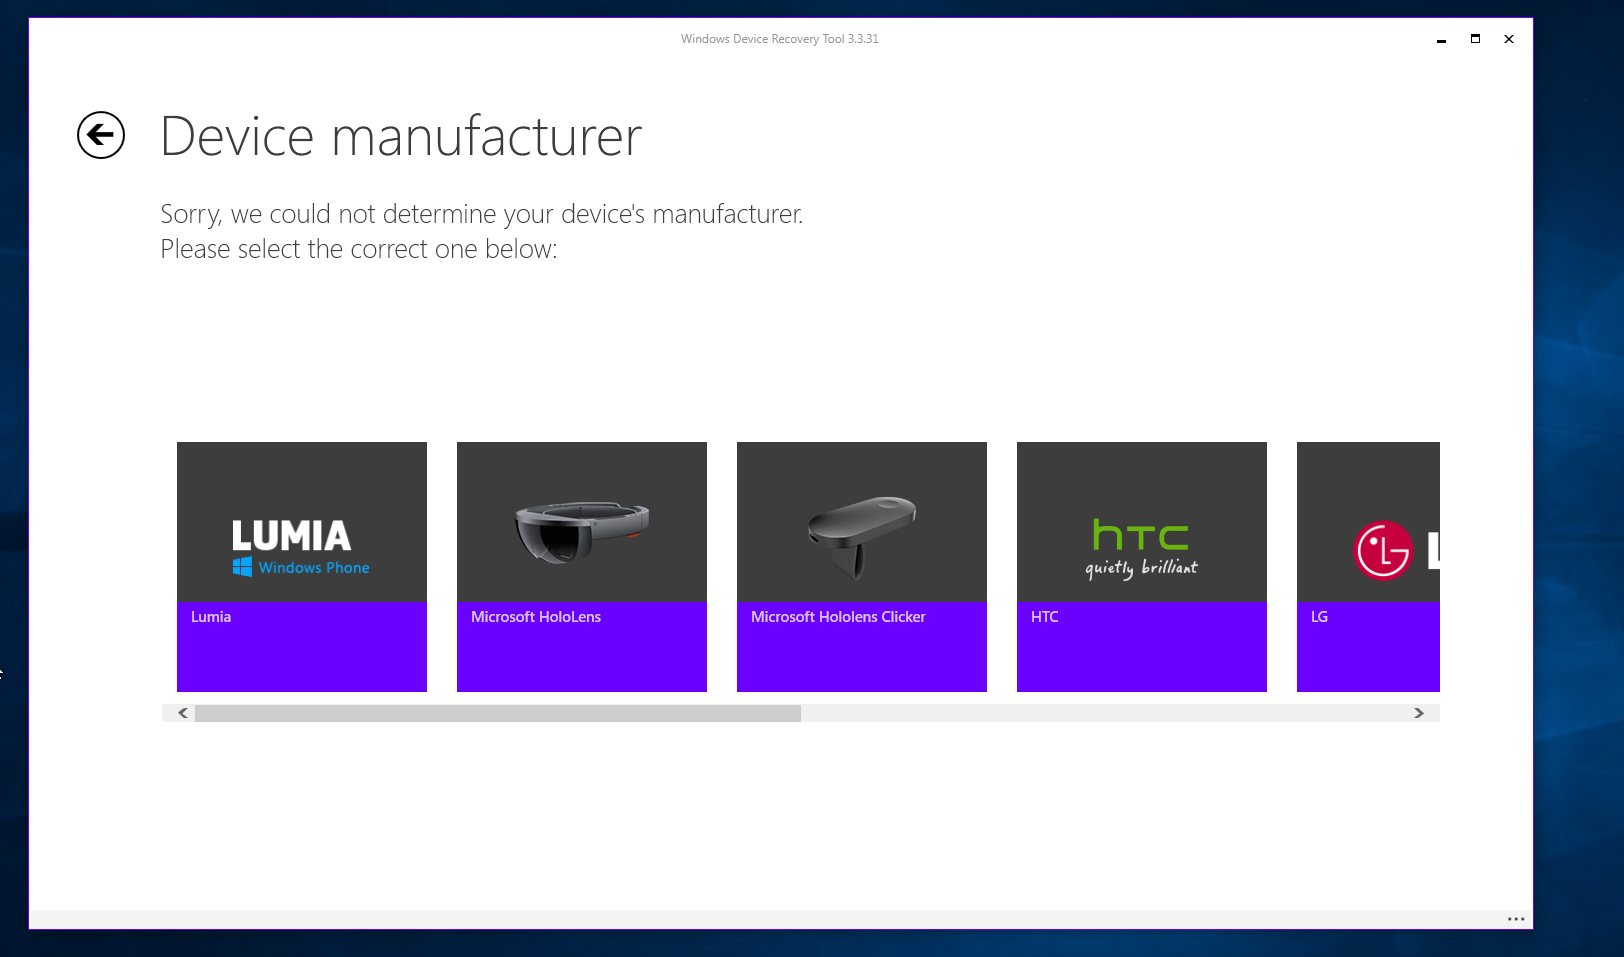 Windows Device Recovery Tool updated with support for HoloLens and